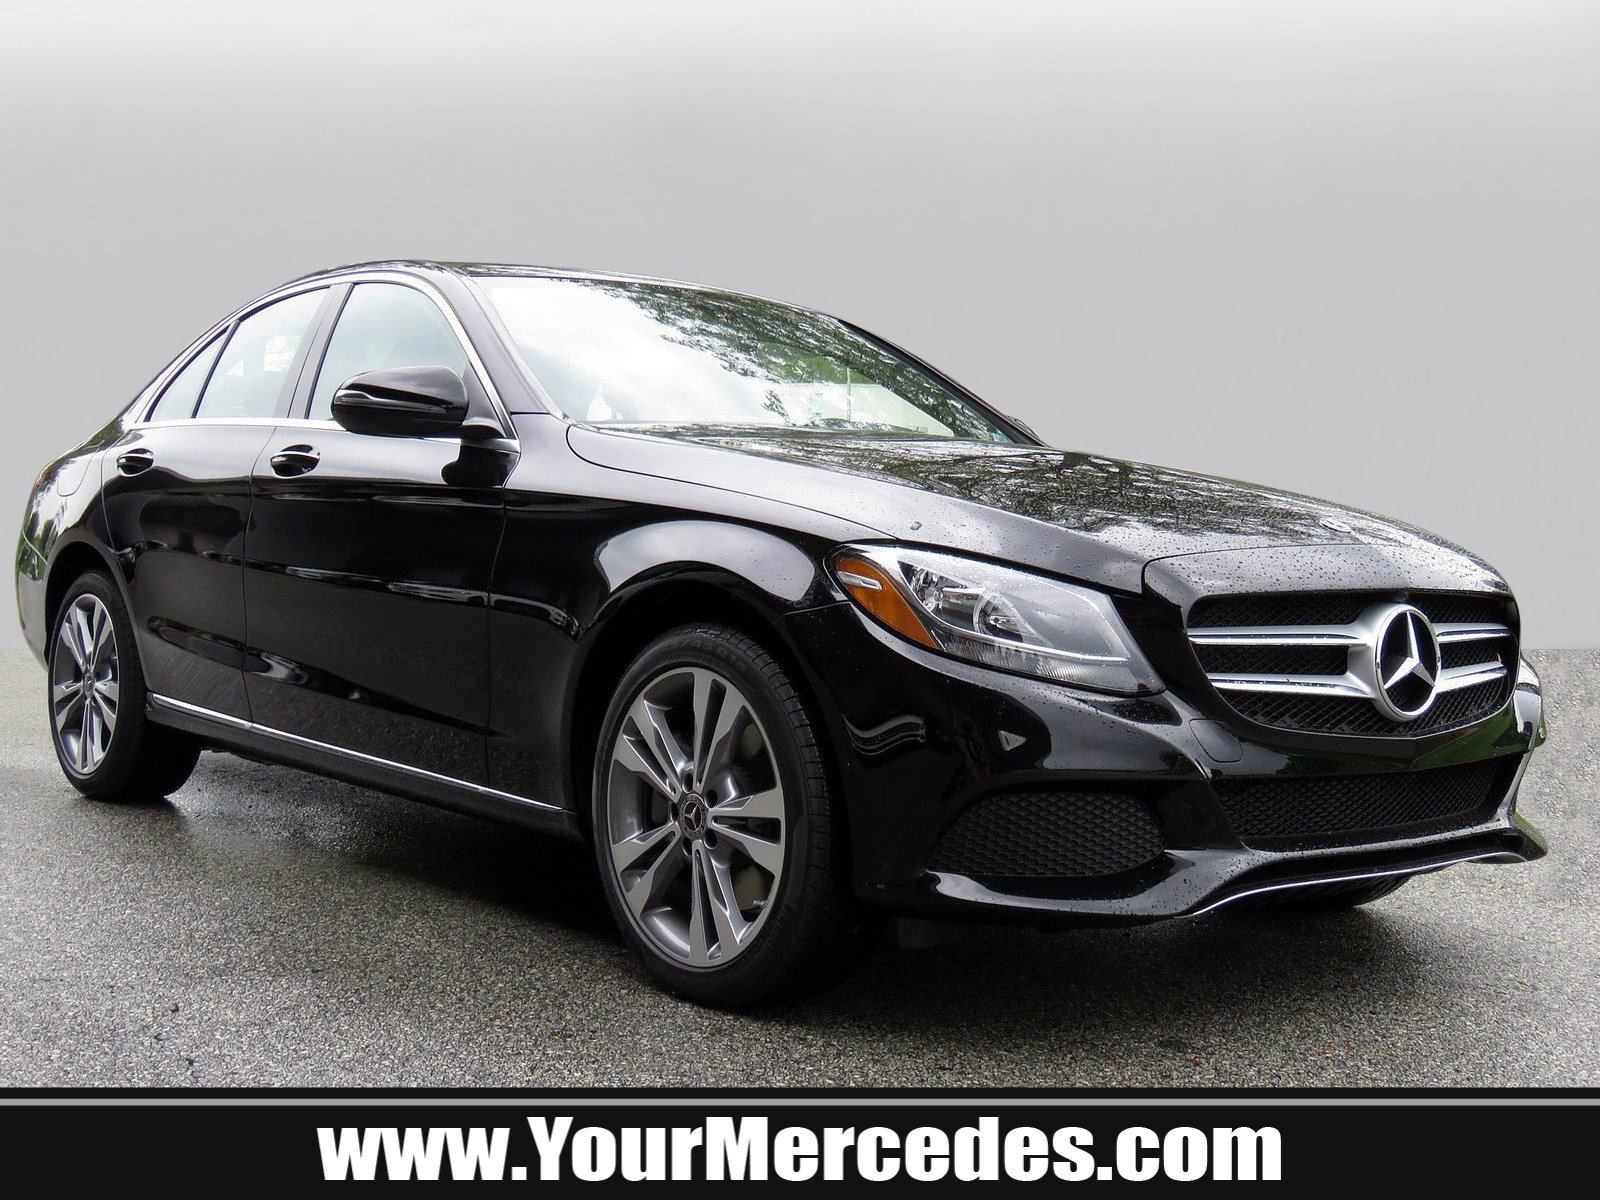 New 2018 Mercedes Benz C Class C 300 SEDAN in West Chester JU